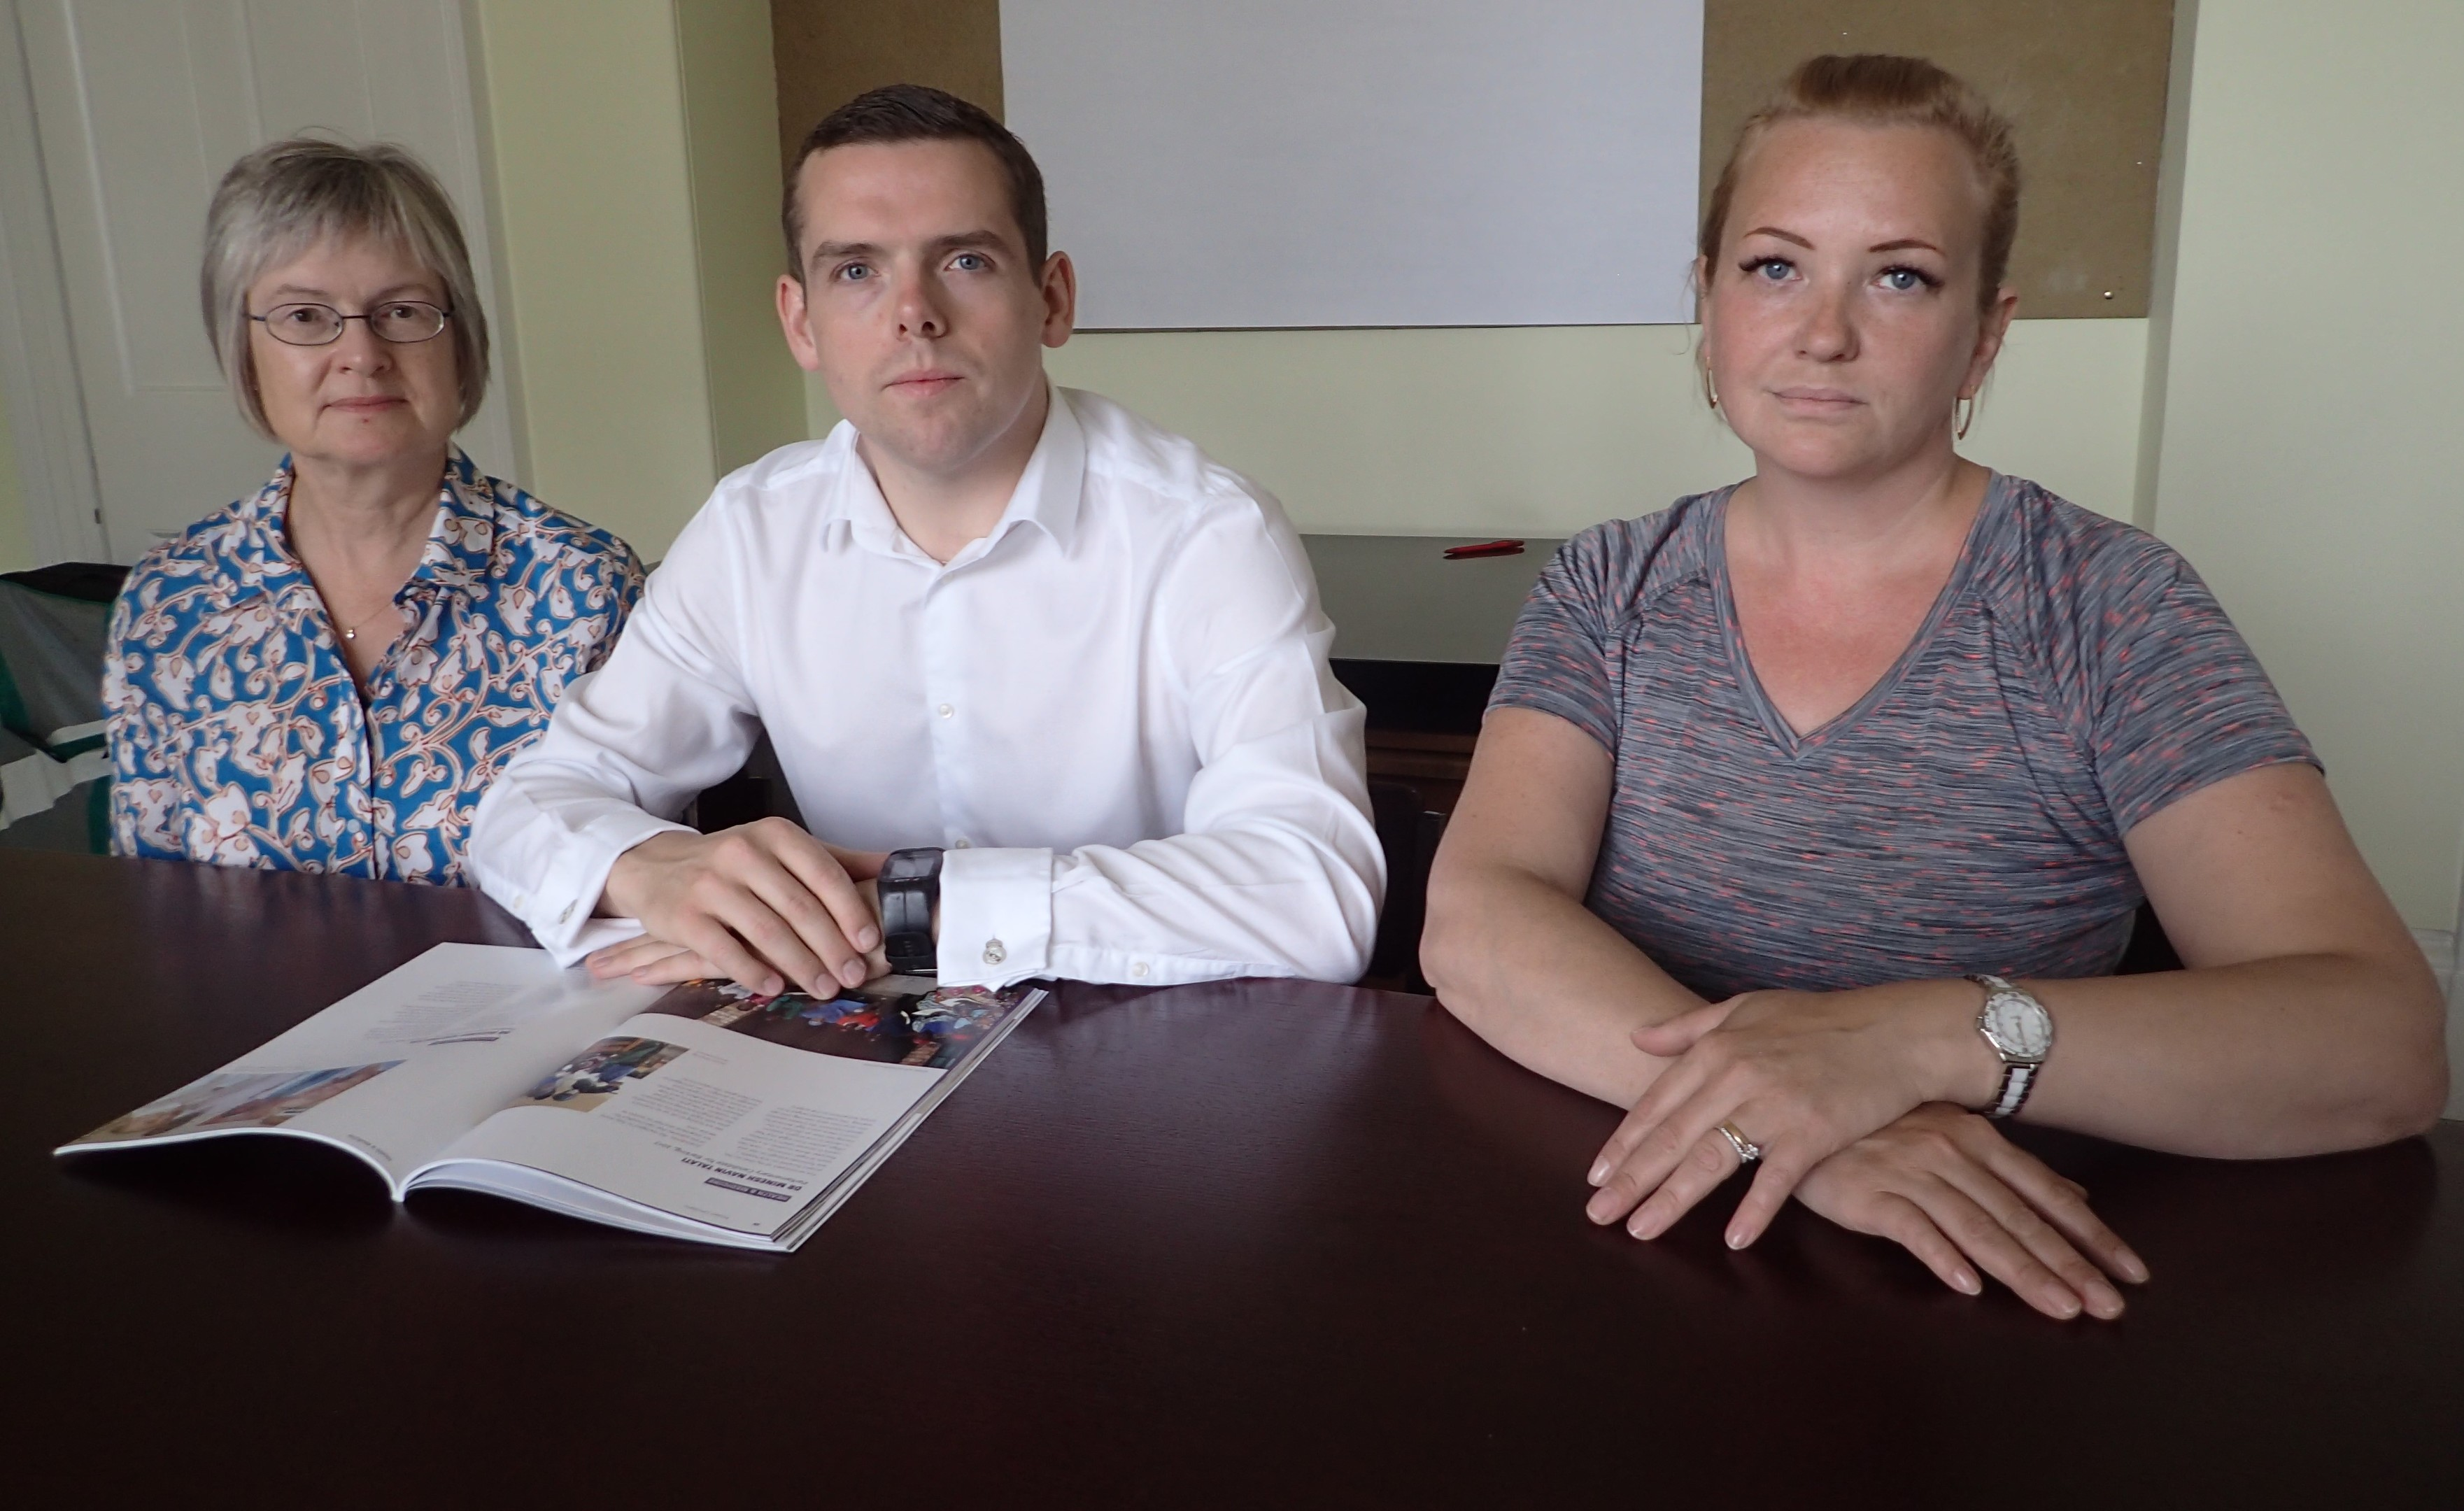 Forres councillor Claire Feaver, Moray MP Douglas Ross and Elgin City North councillor Maria McLean are concerned about firms in Moray missing out on public sector contracts.